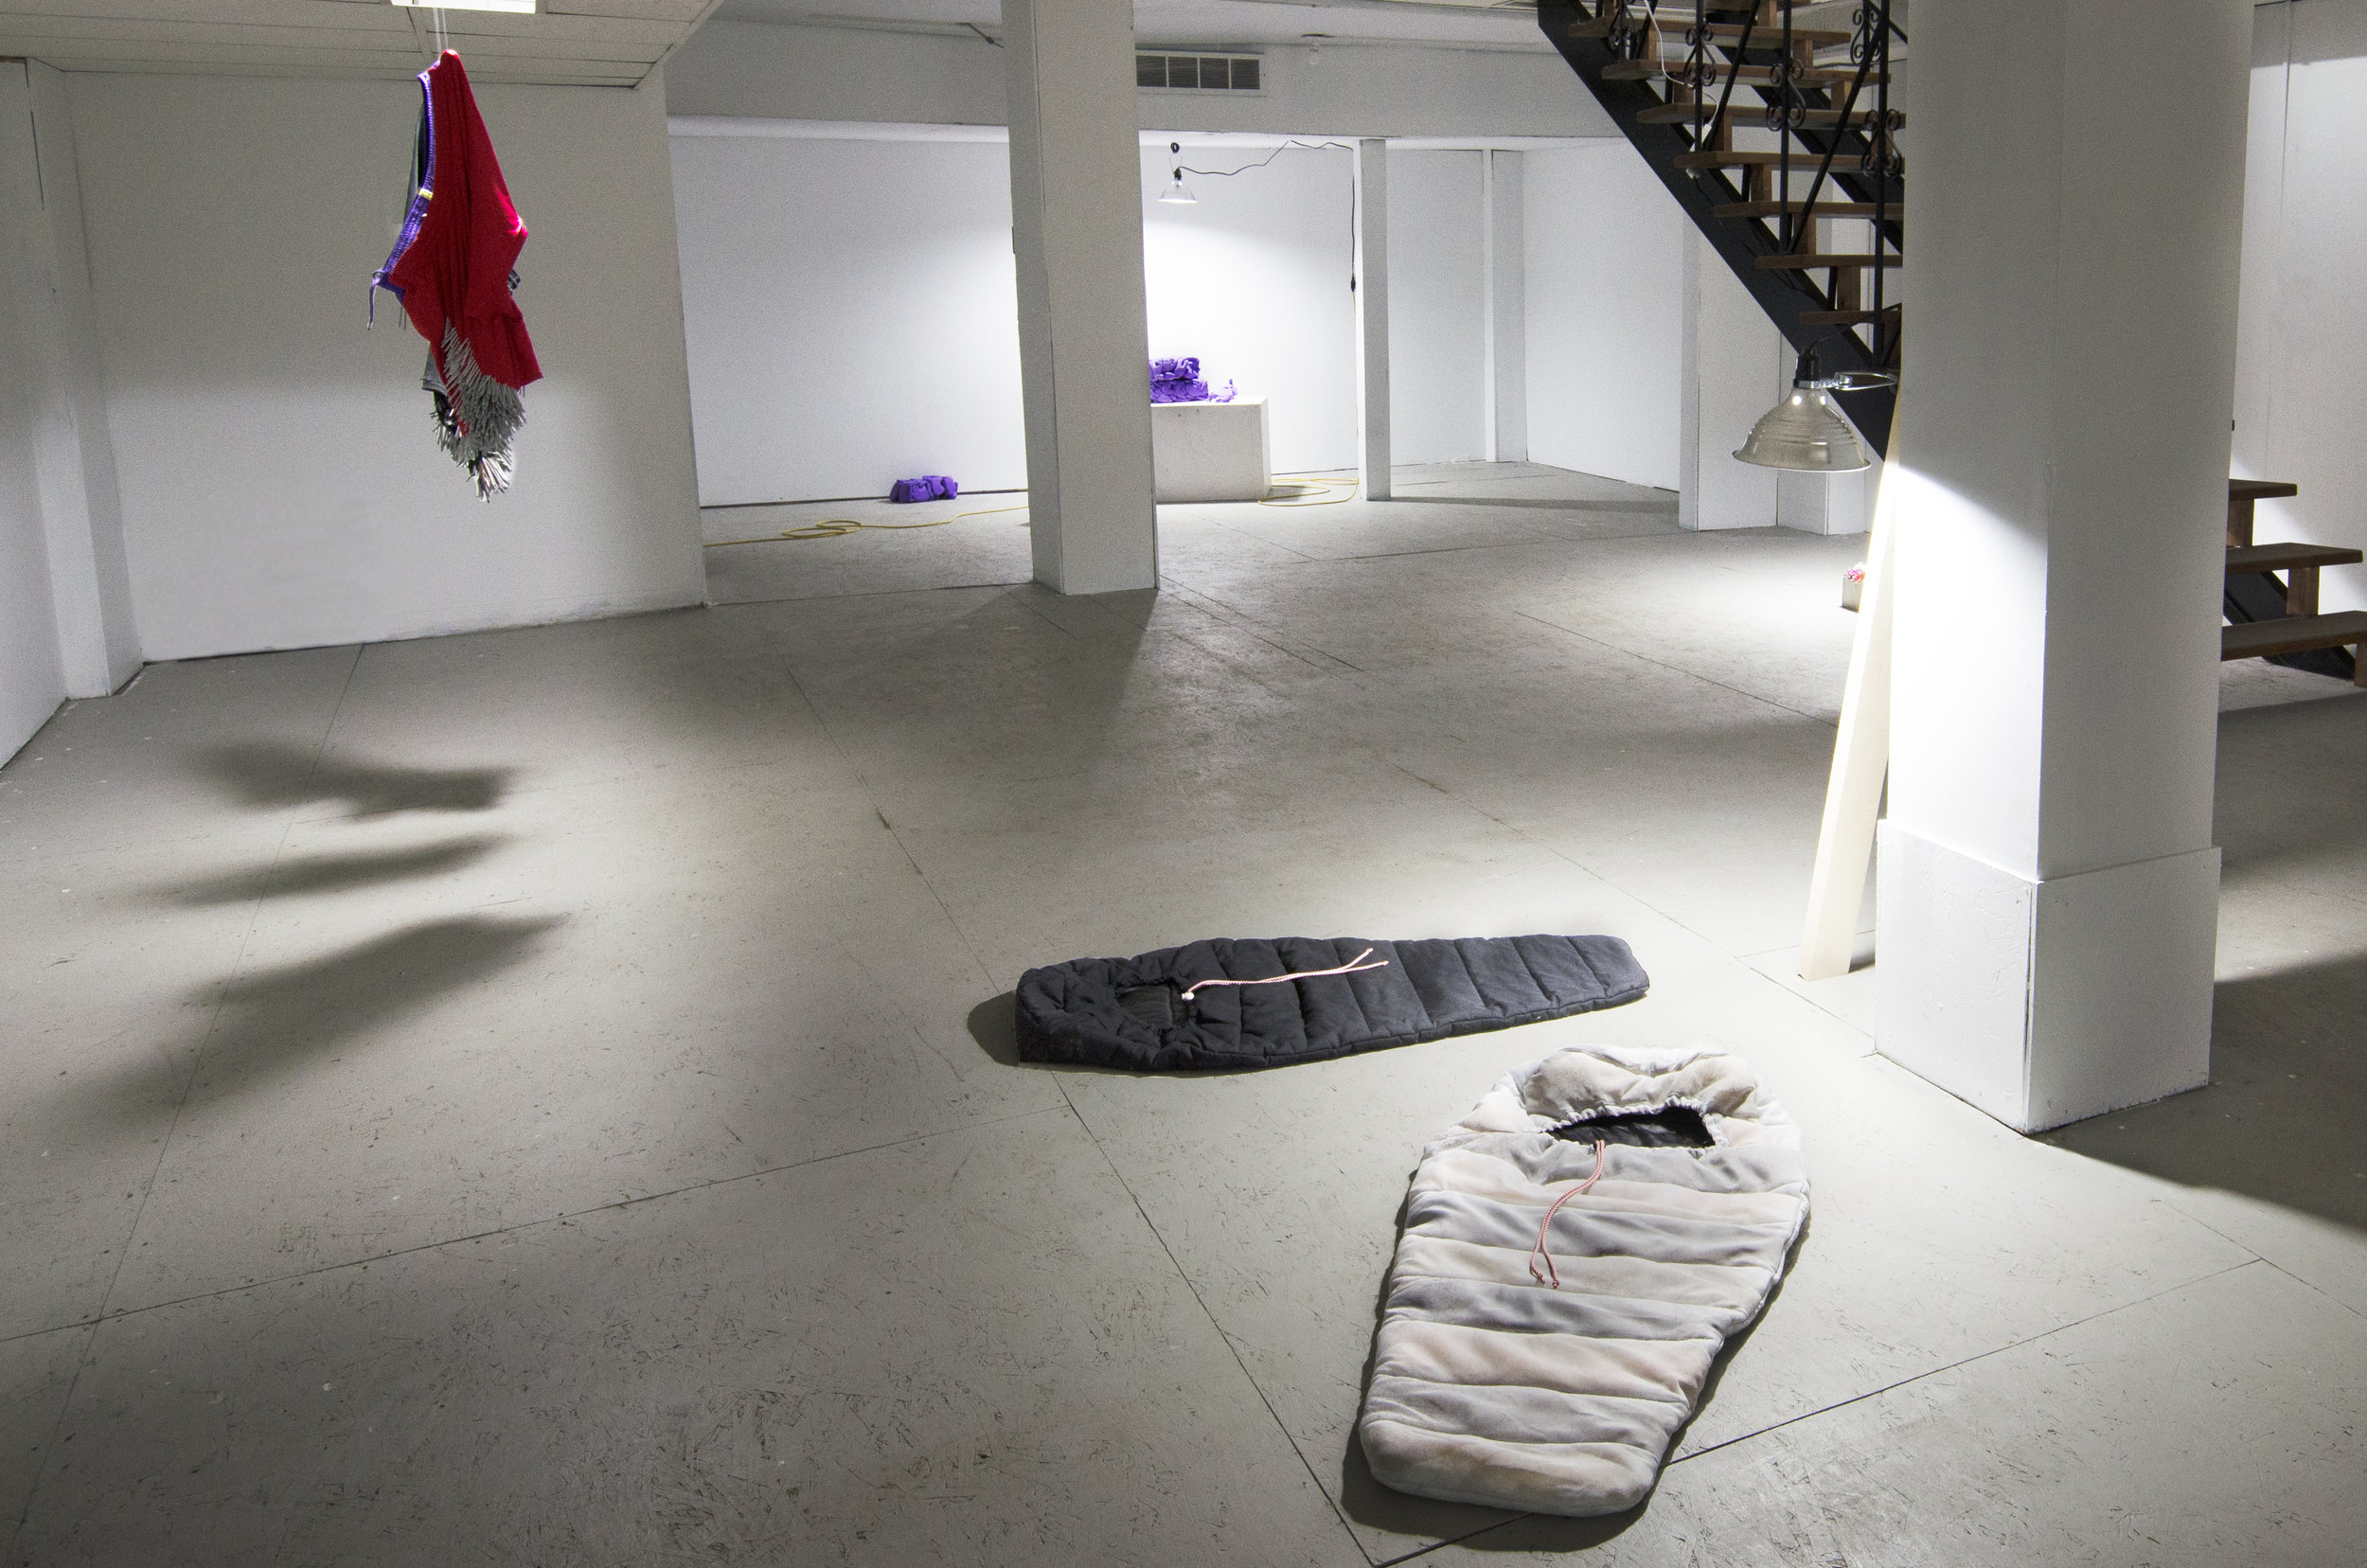 Ibid.  installation view, featuring work by Benjamin Spalding, Claire Paquet and Hilarey Cowan (left to right).